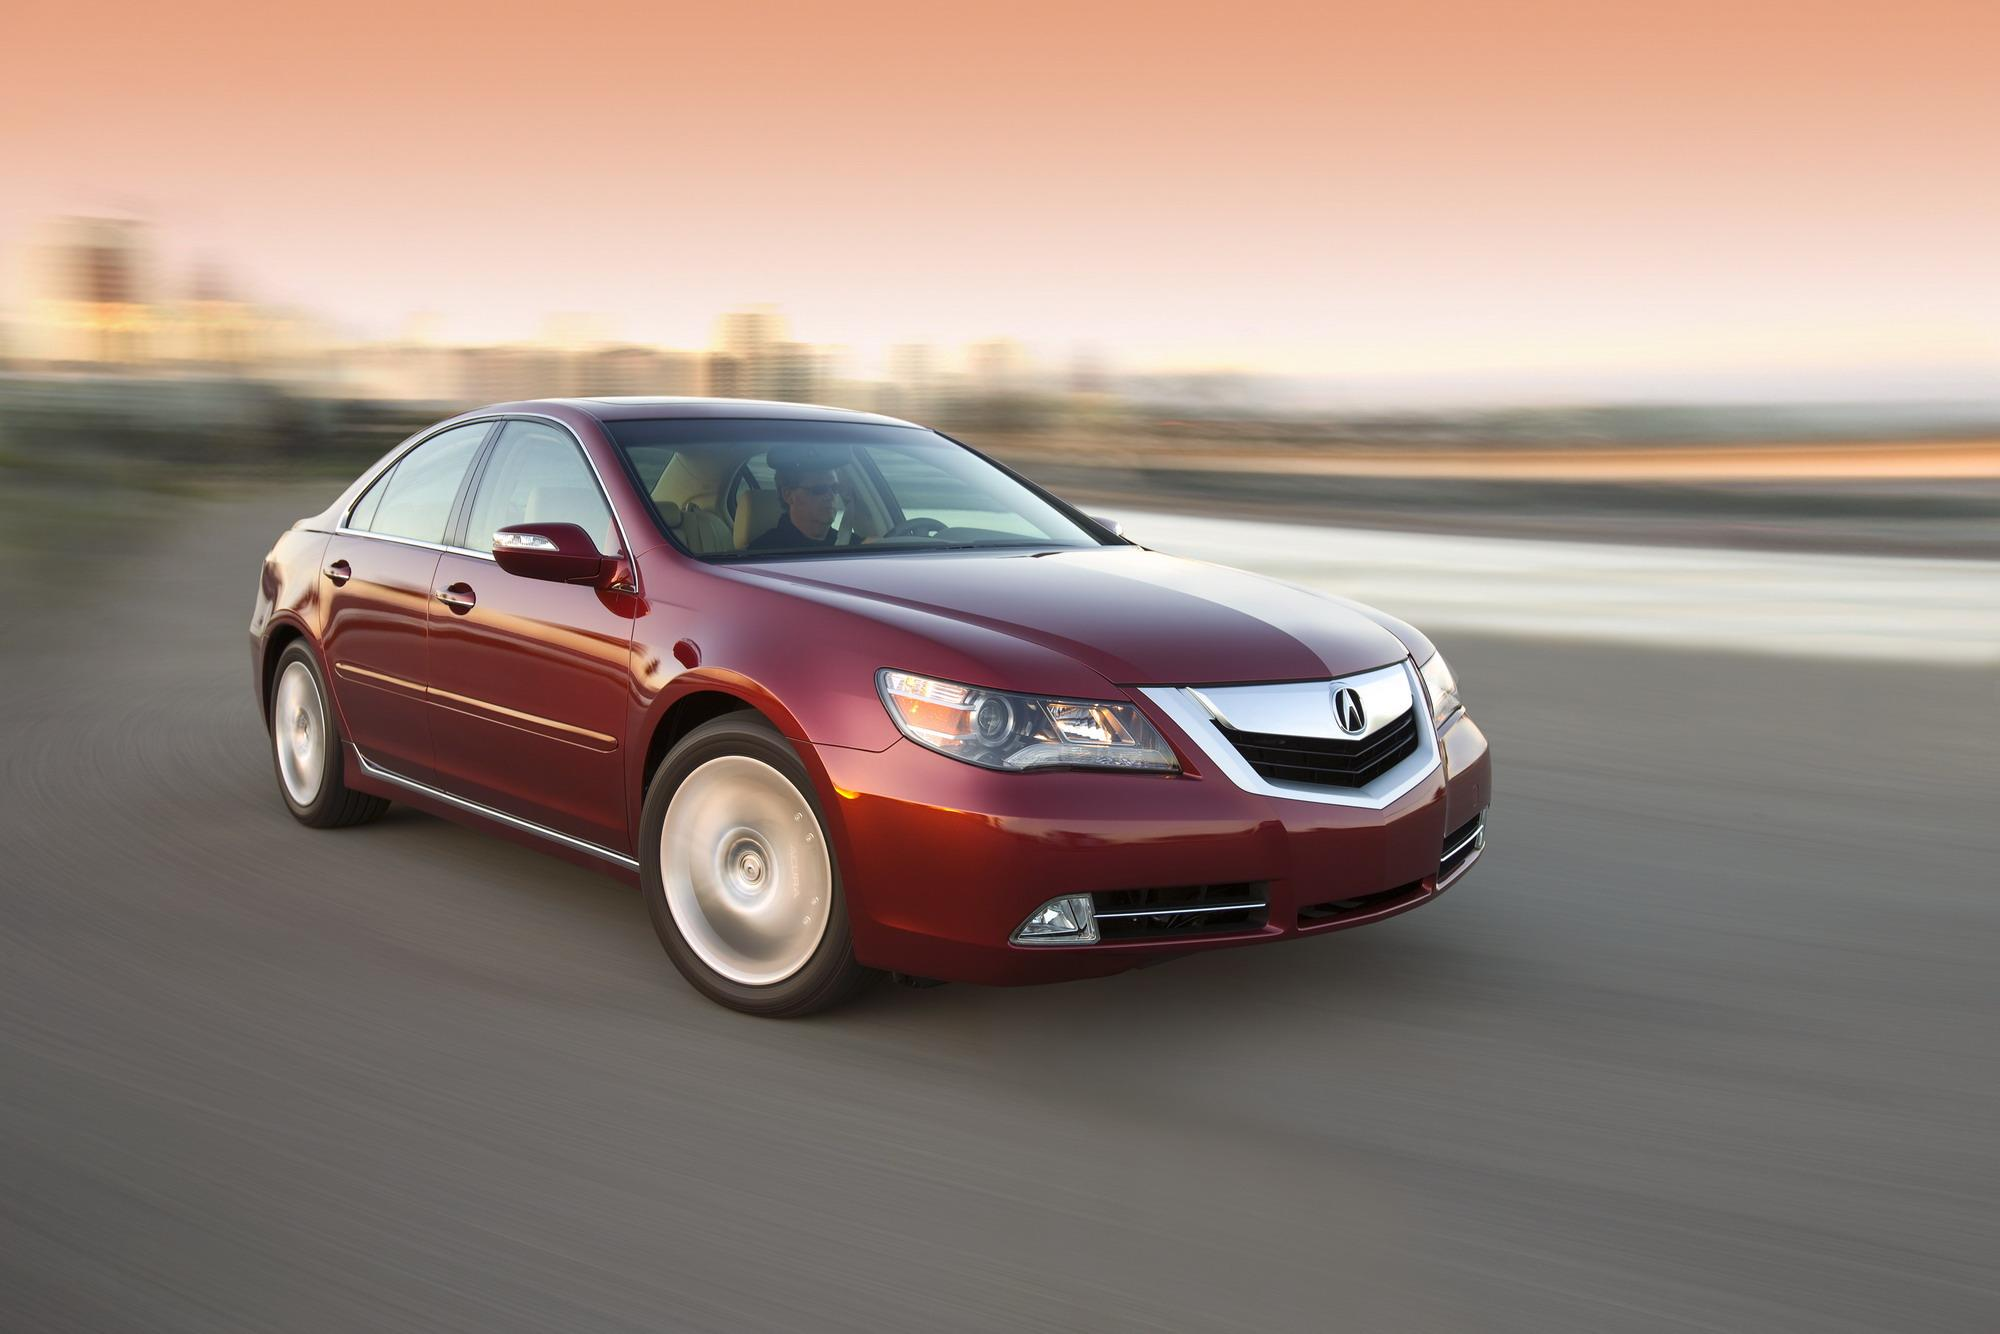 w tech used stock for sale acura rl awd acc l sh htm package c wtechcmbsacc cmbs